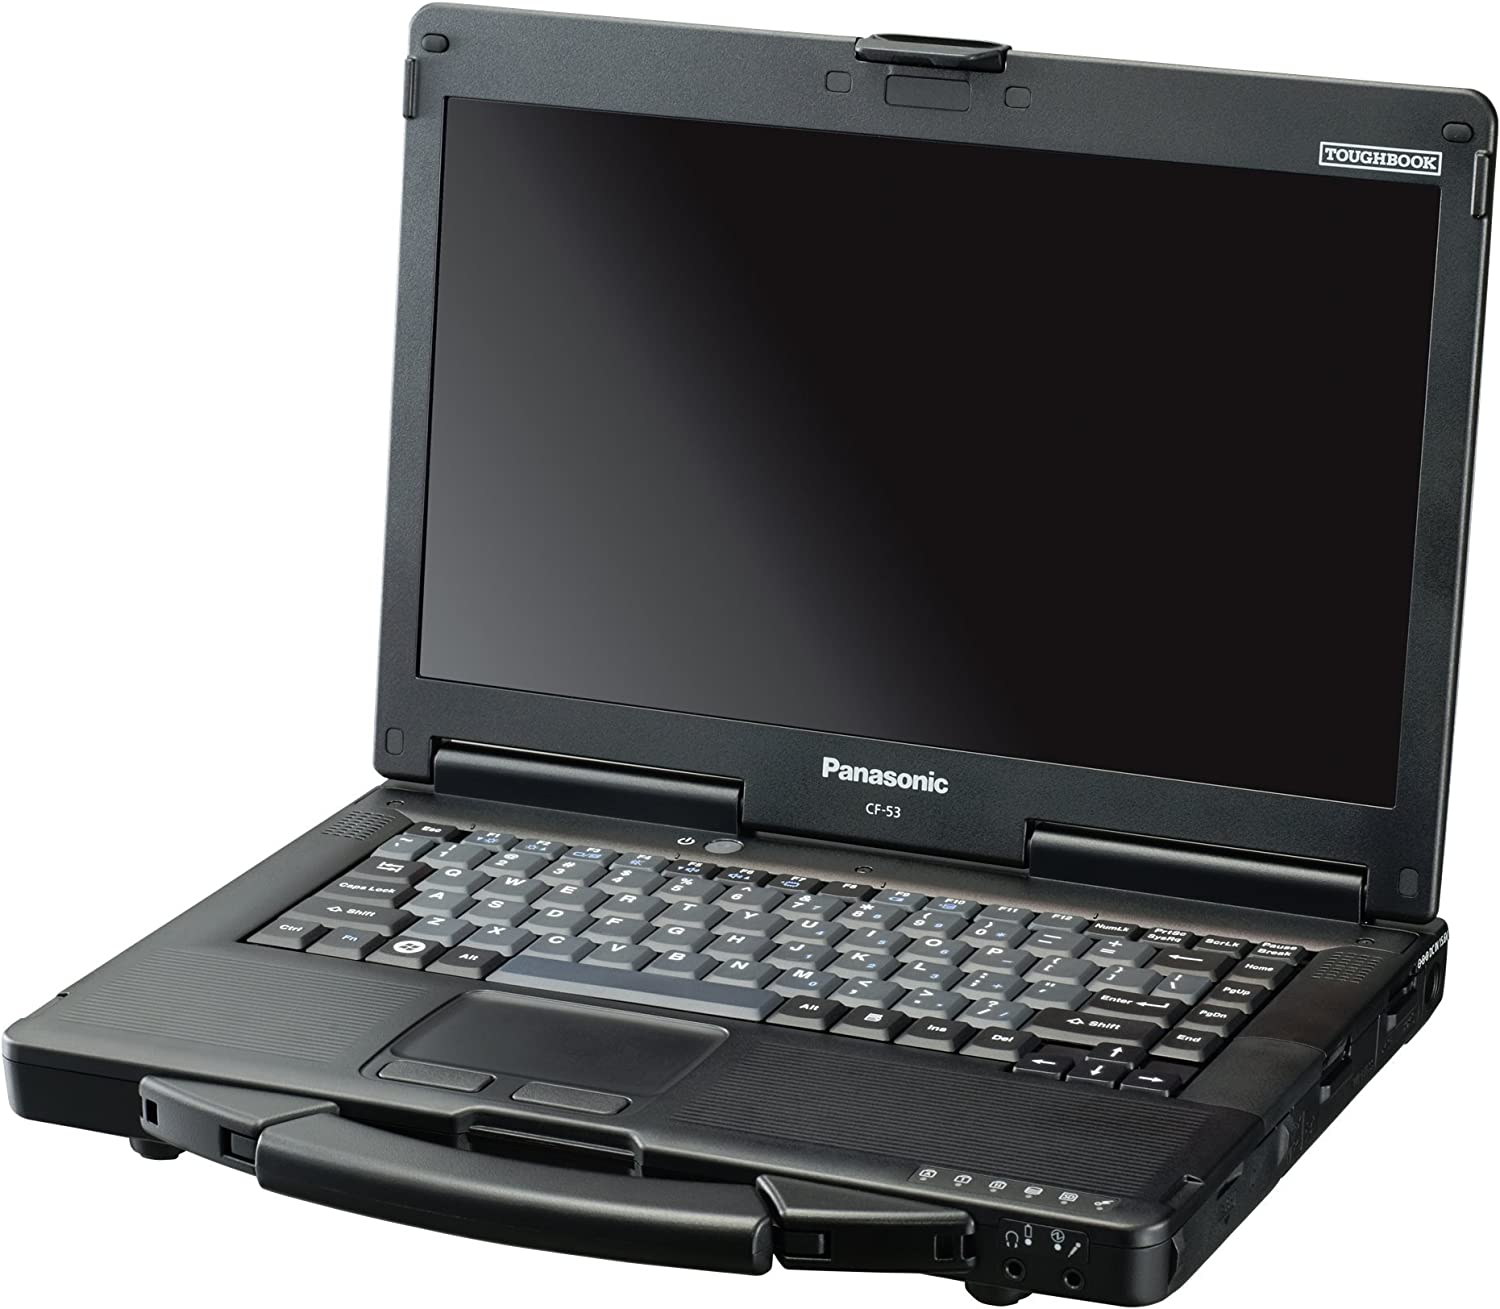 "Panasonic Toughbook 53 Lite 14"" Notebook - Windows - Intel Core i5 2 GHz - 4 GB RAM - 320 GB HDD, Black/Silver (CF-532JCZYNM)"